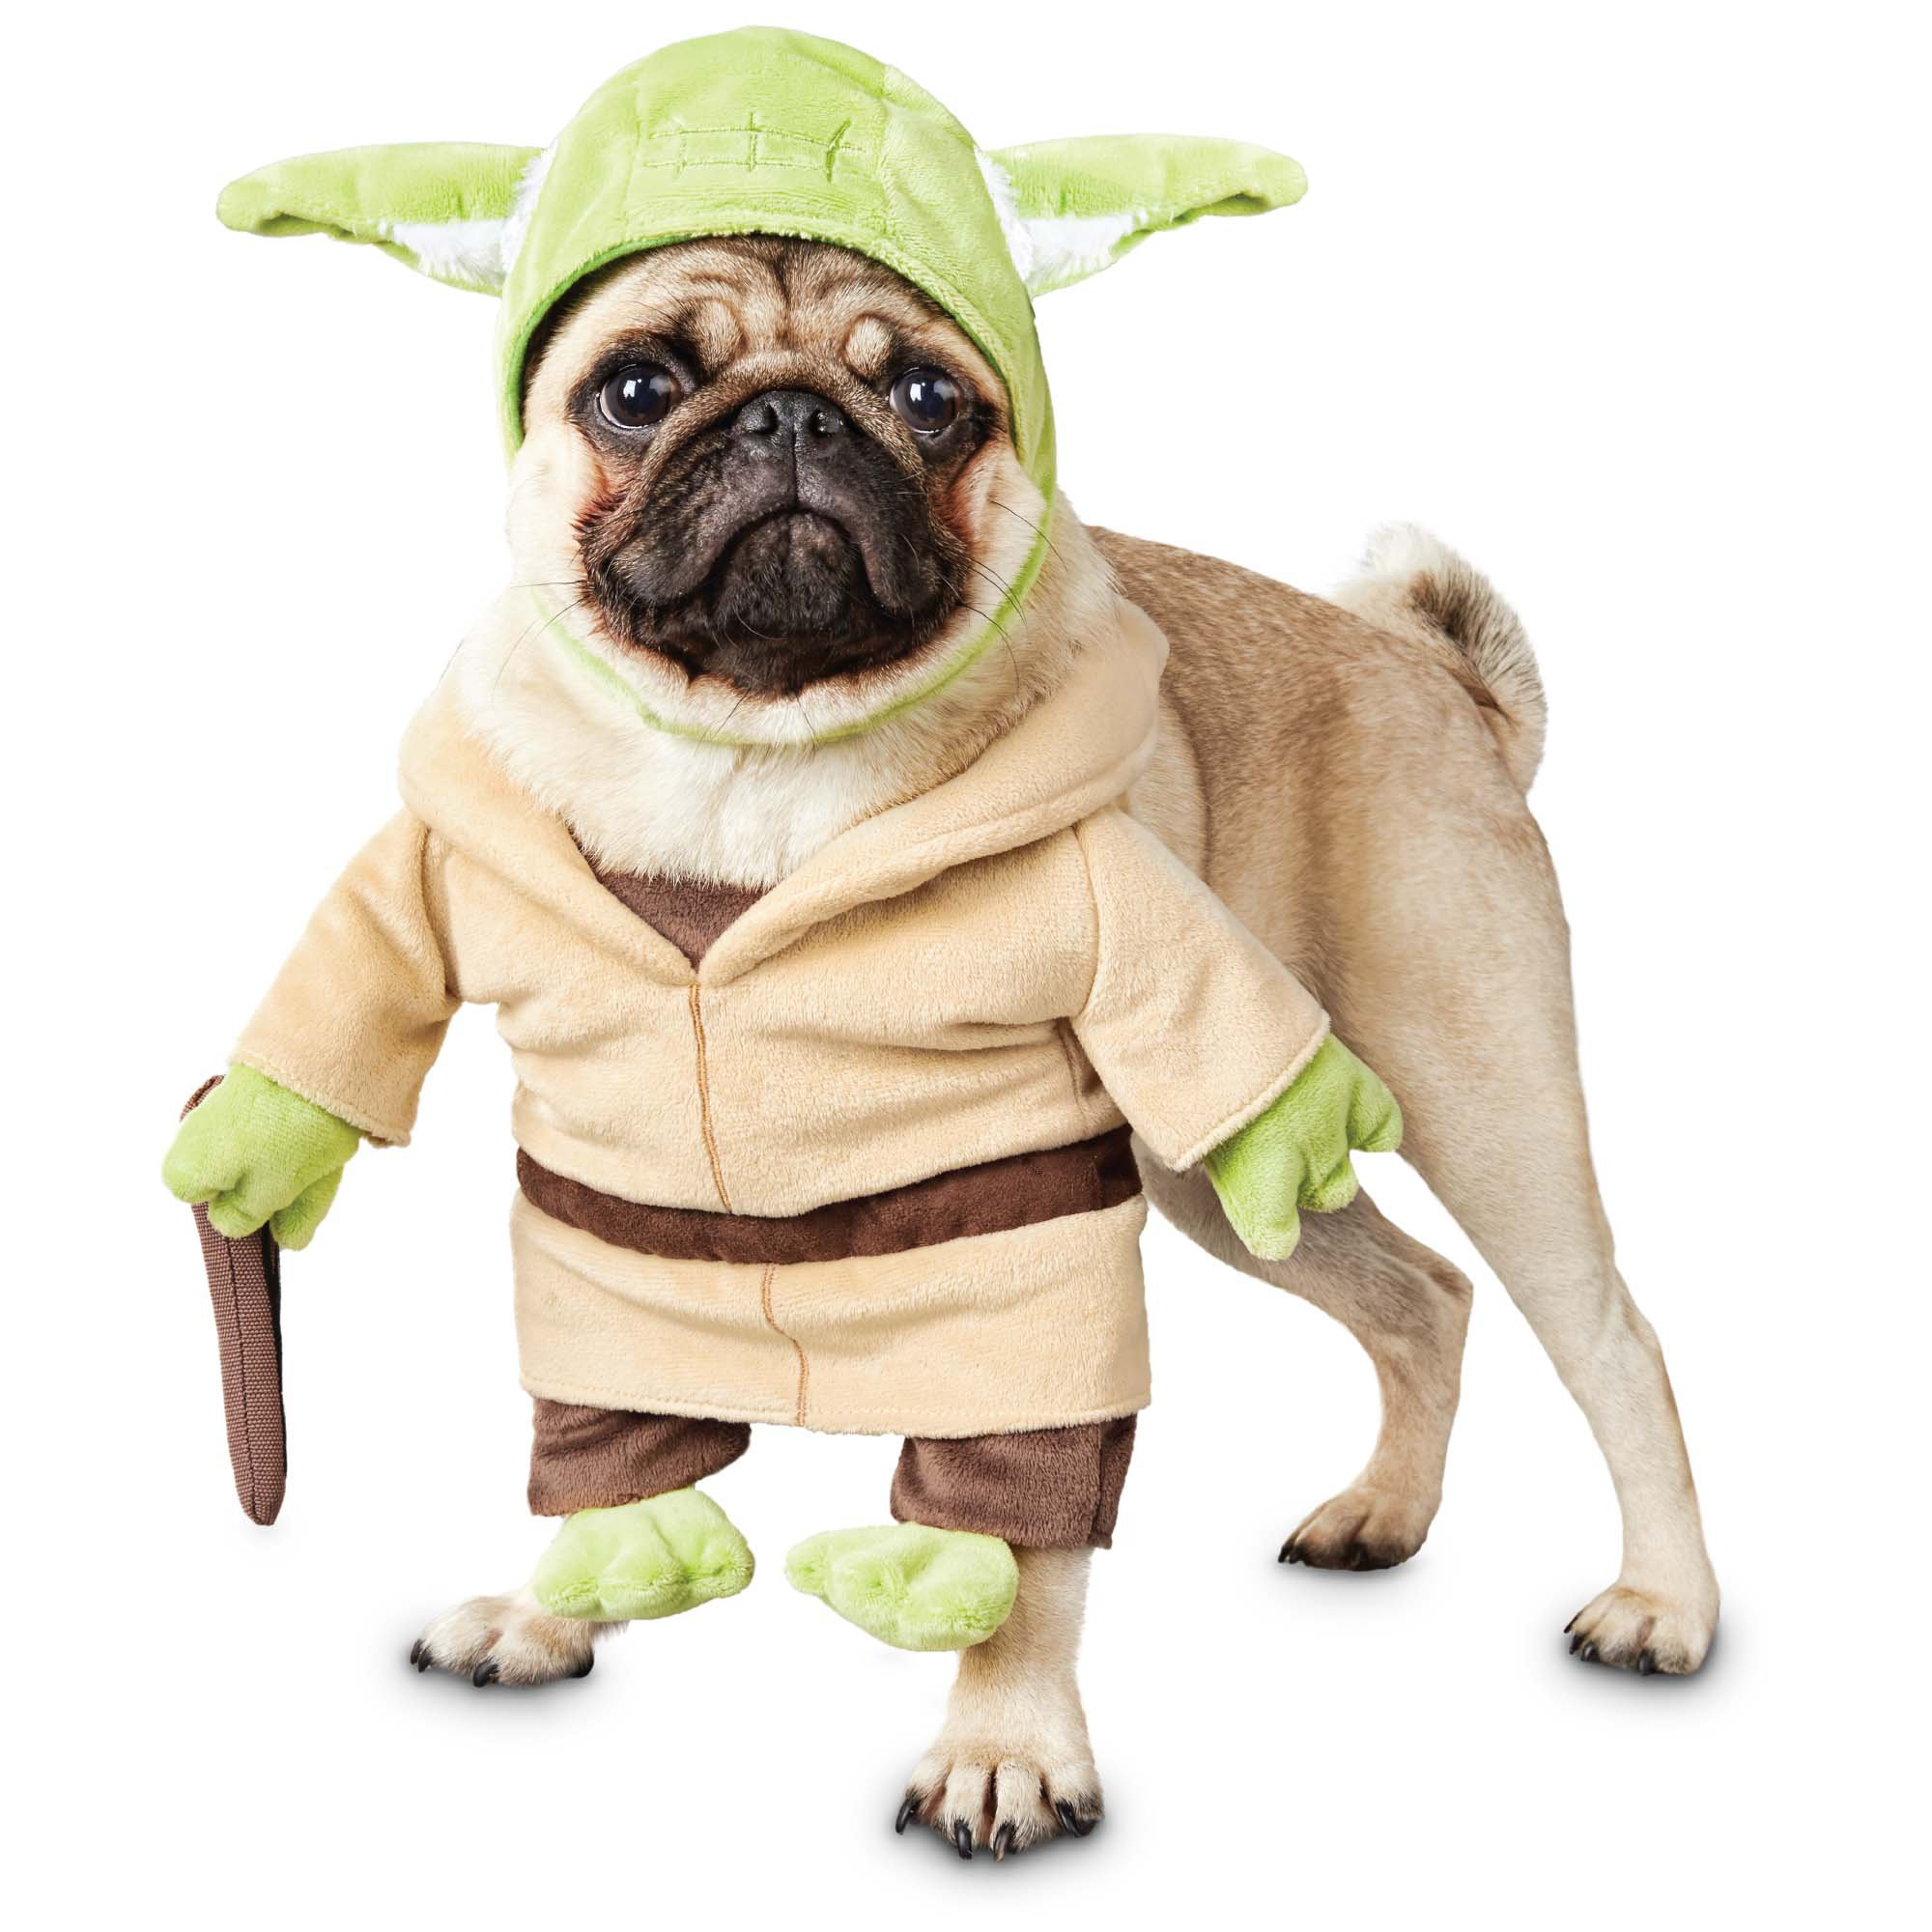 sc 1 st  Petco & Star Wars Yoda Illusion Dog Costume | Petco